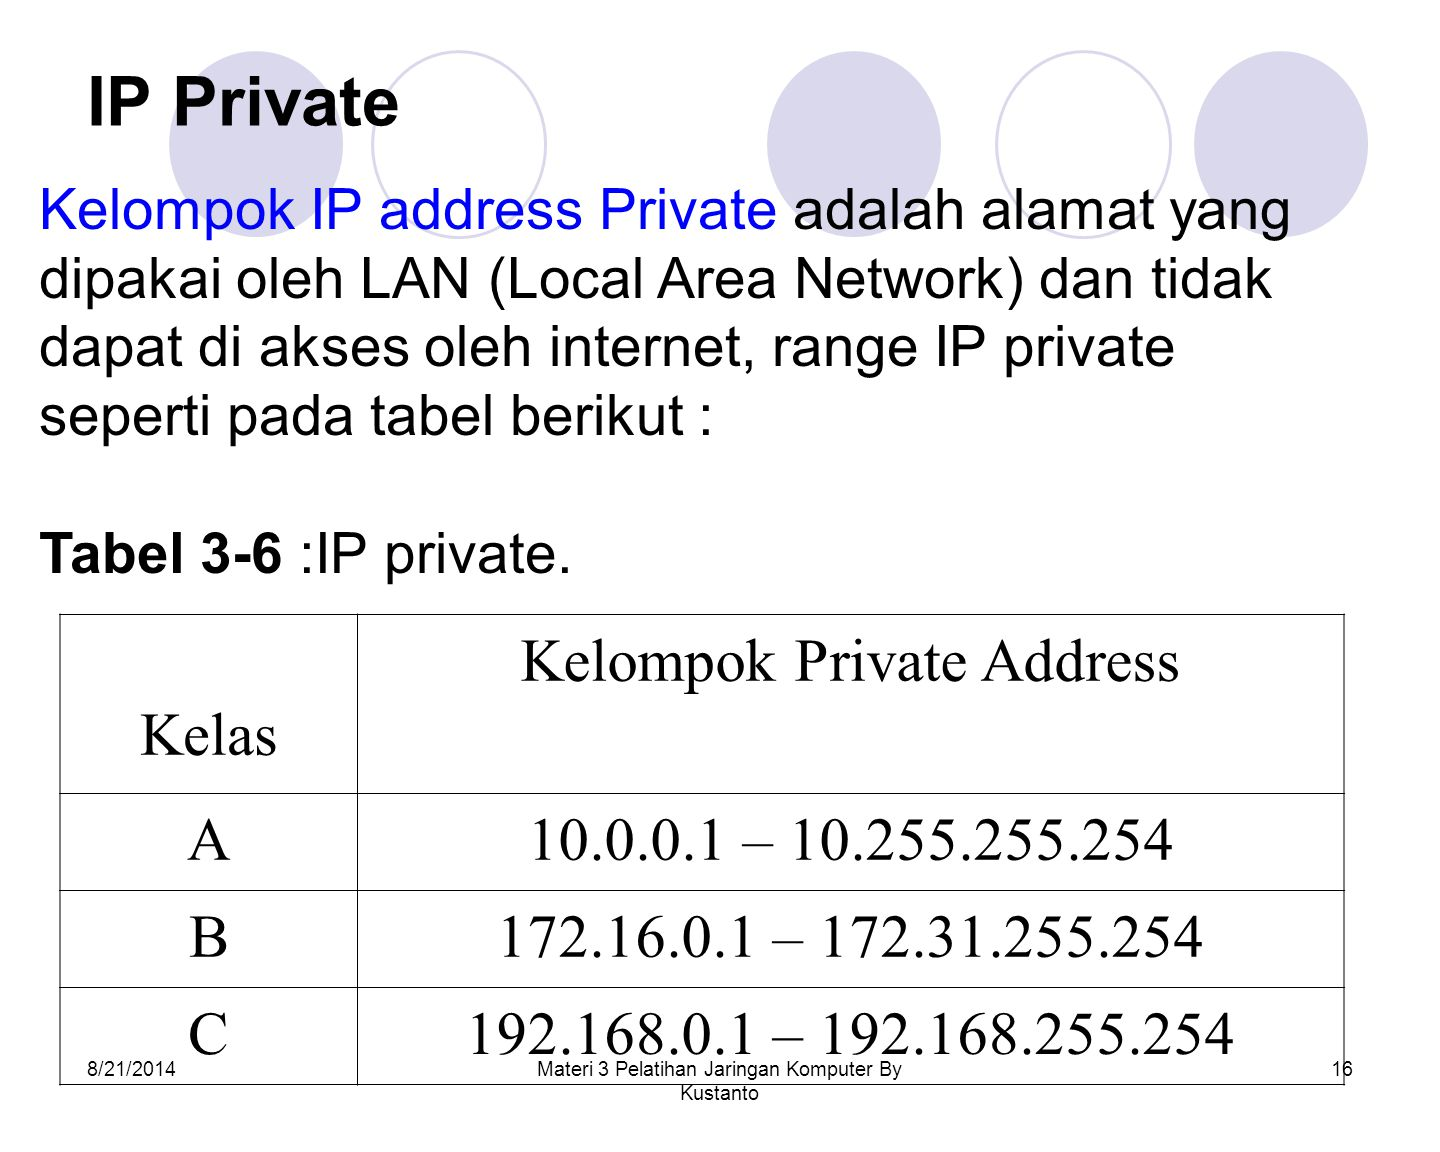 IP Private Kelas Kelompok Private Address A 10.0.0.1 – 10.255.255.254